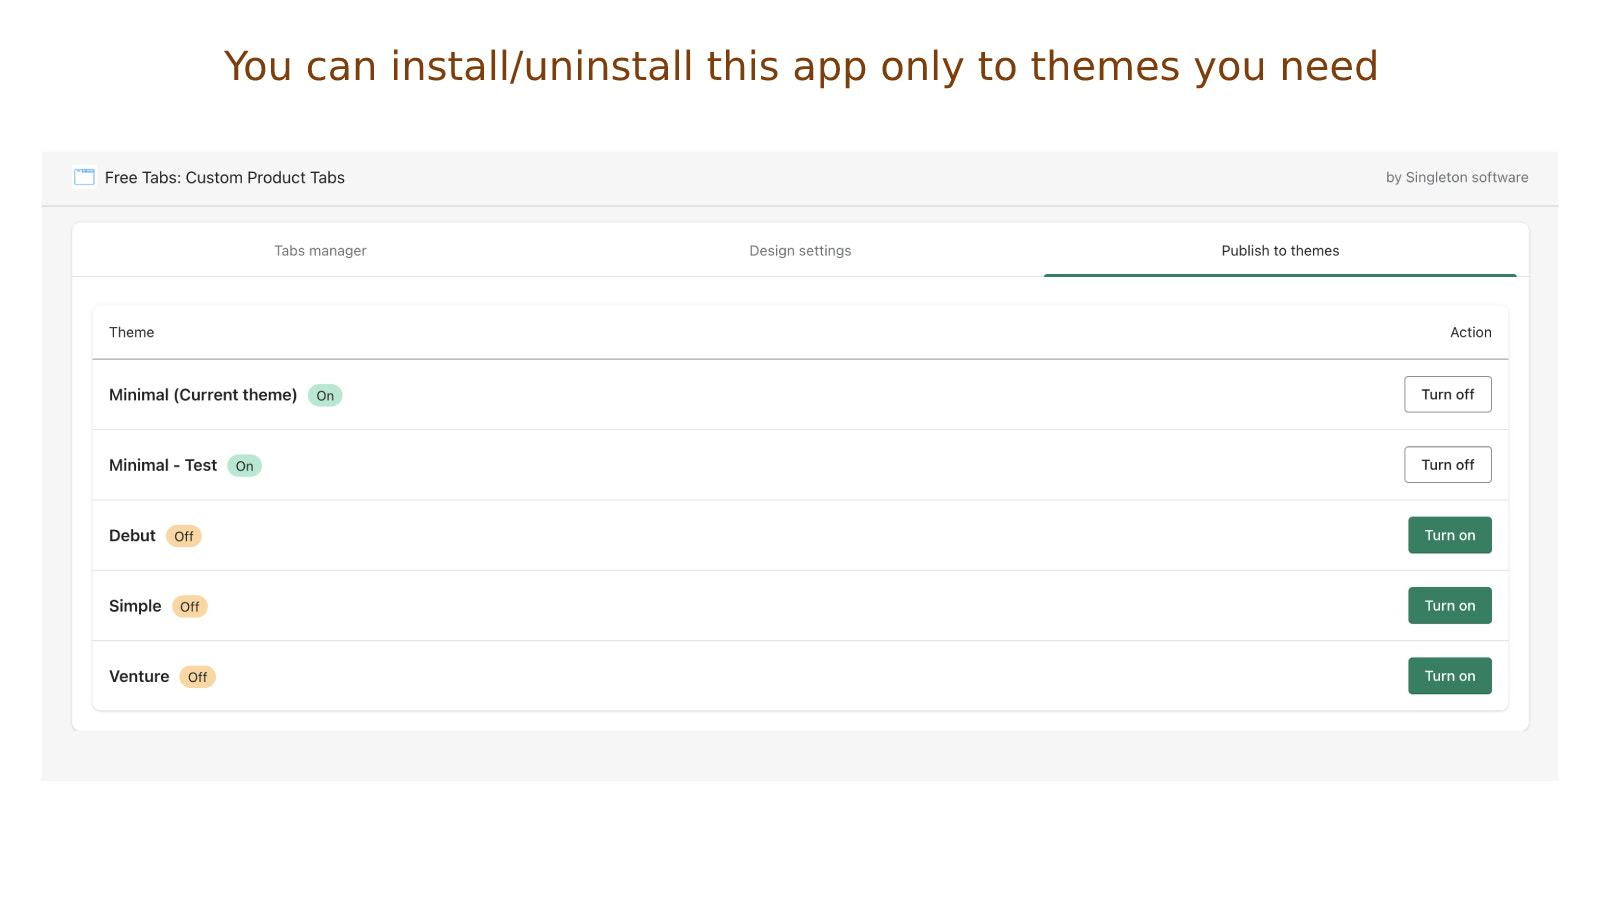 You can install/uninstall app only to themes you need